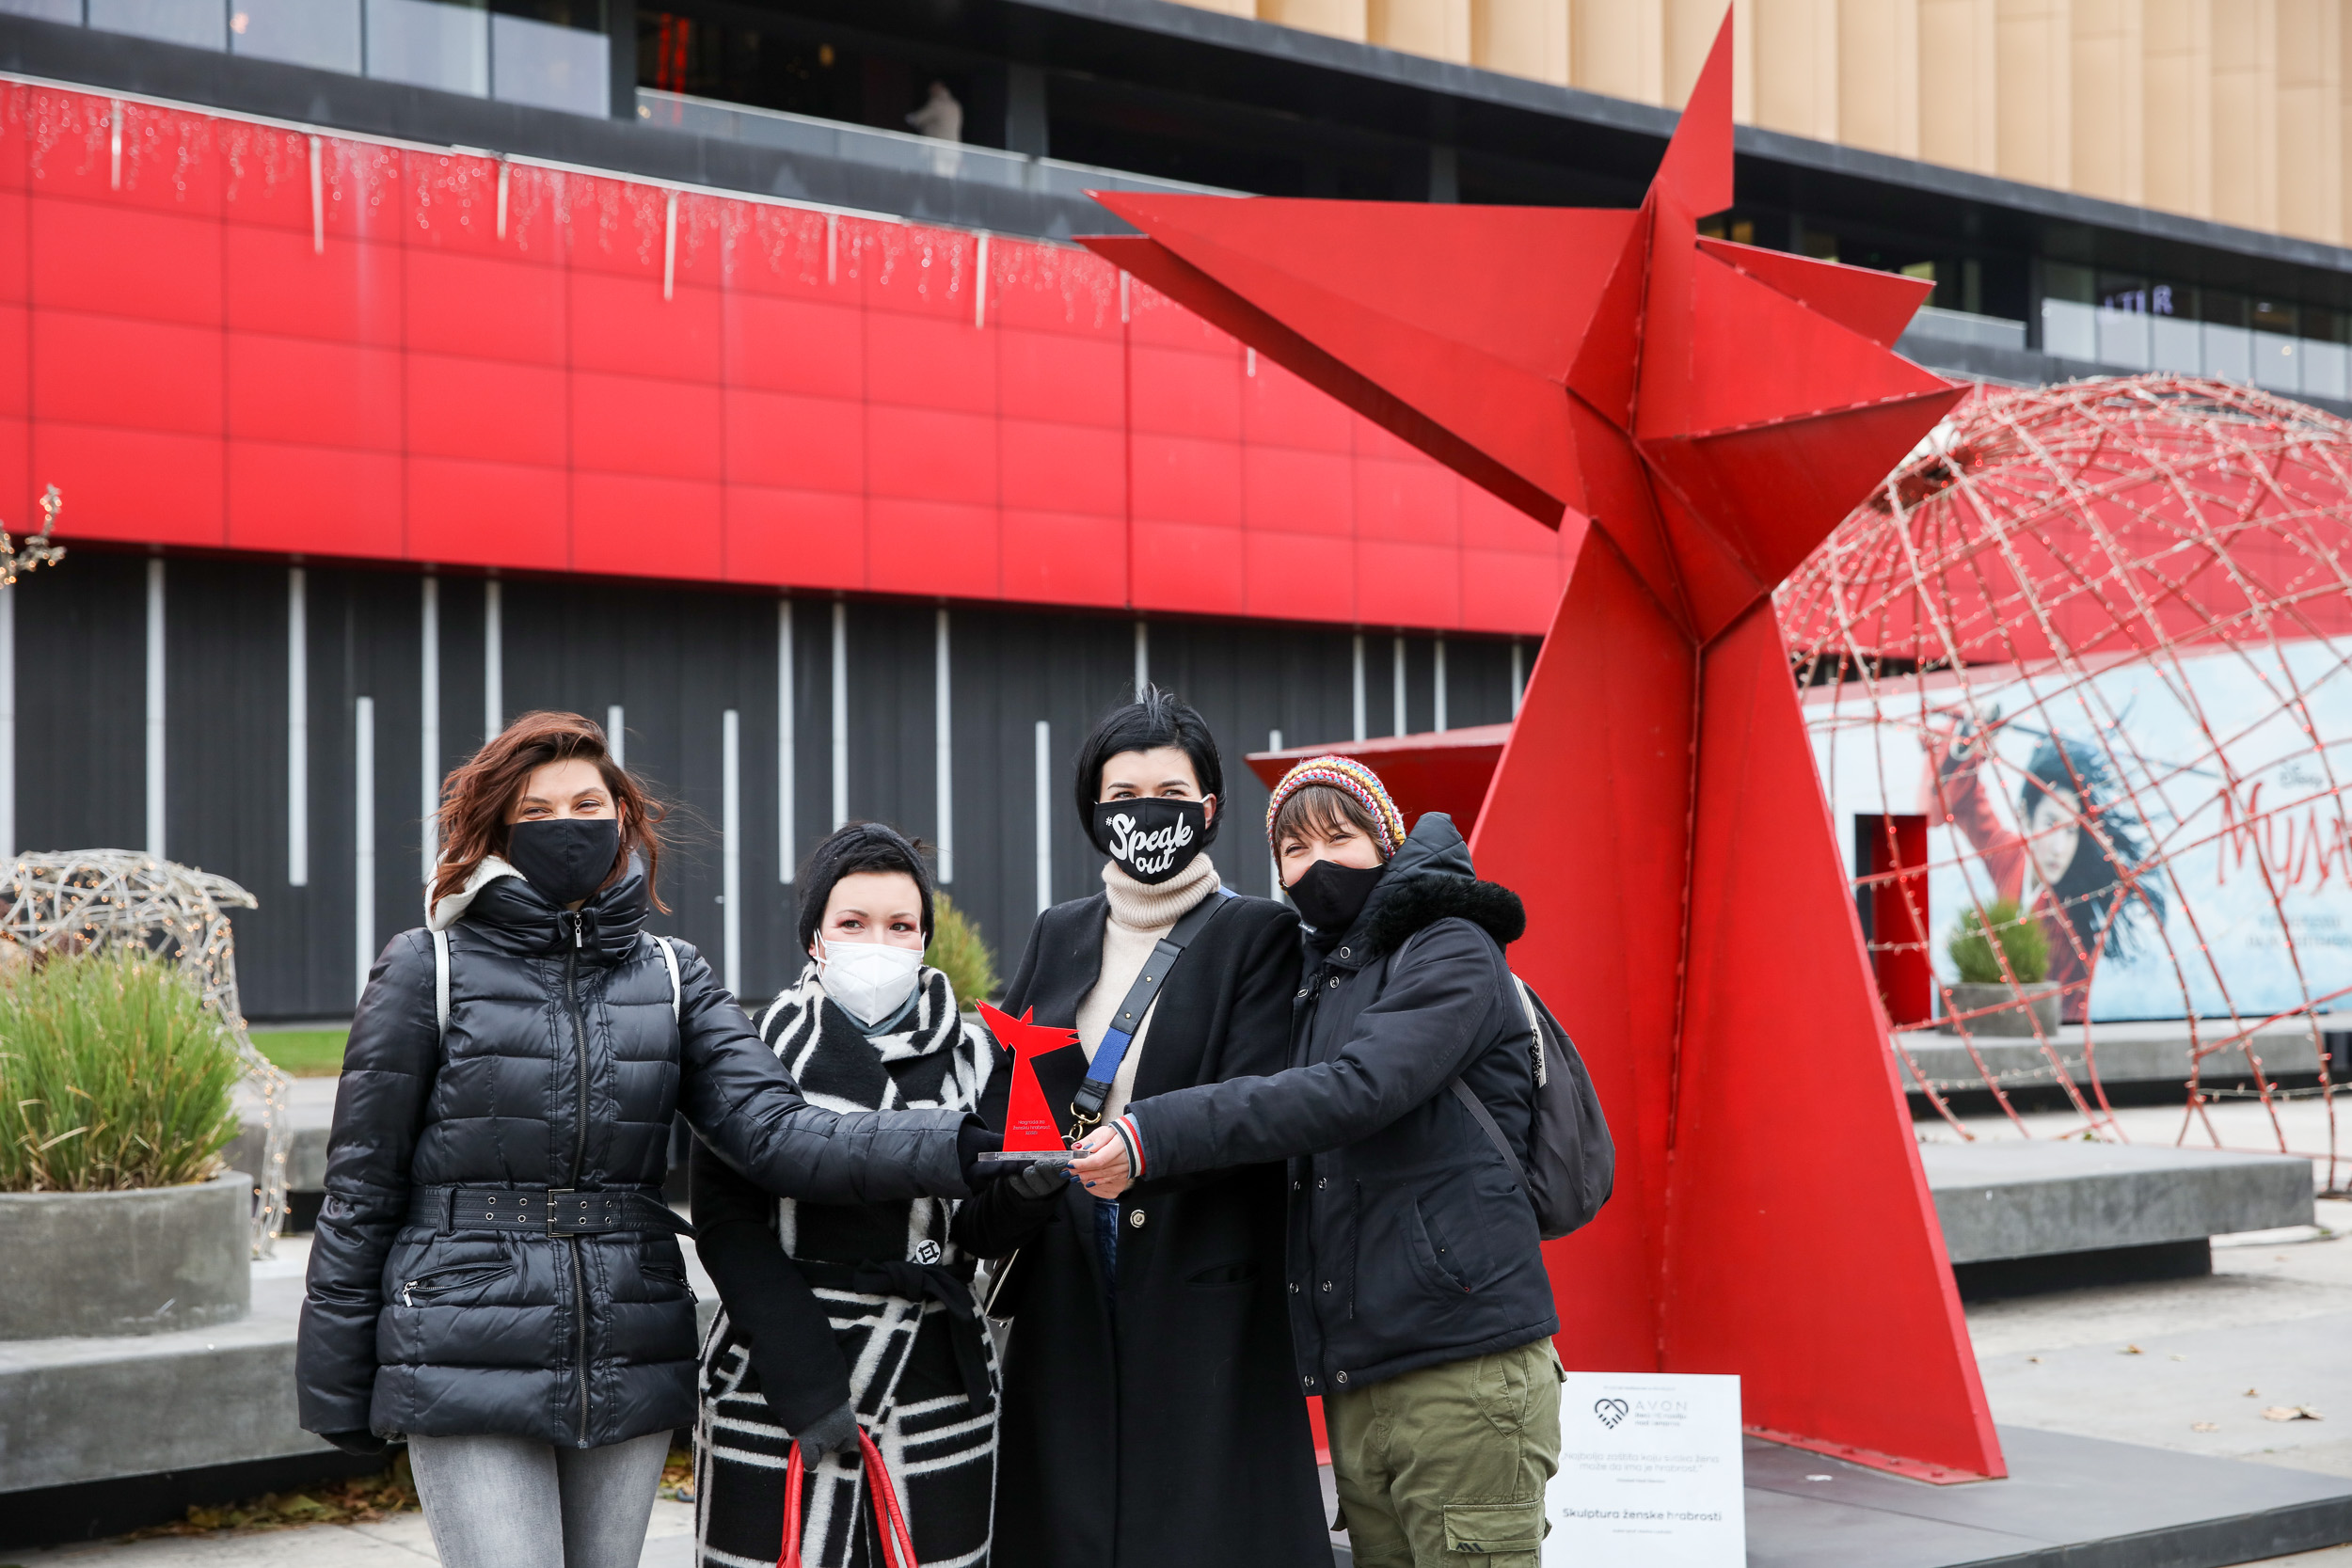 Four women stand together with masks in front of a red statute.